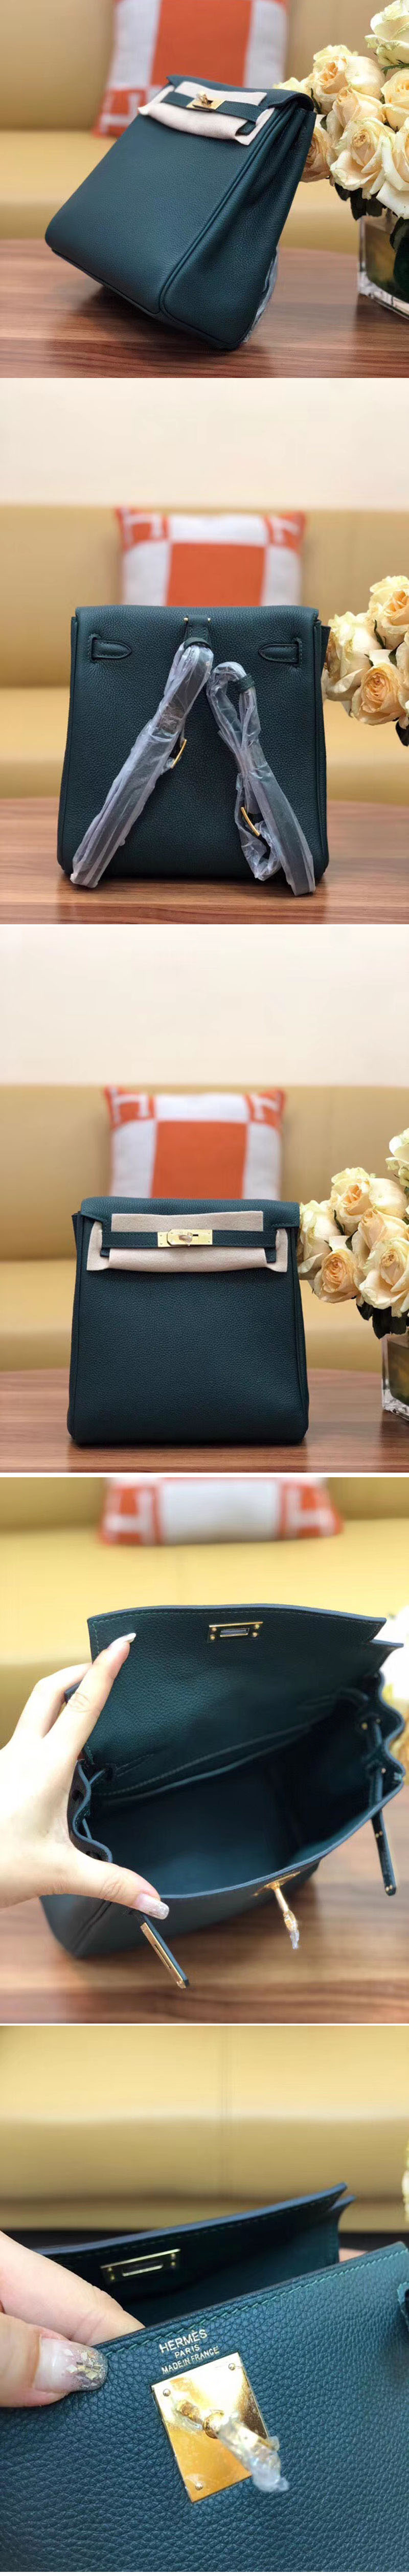 Replica Hermes kelly ado 22cm backpack Original Togo Leather Full Handstitch Green Gold Hardware